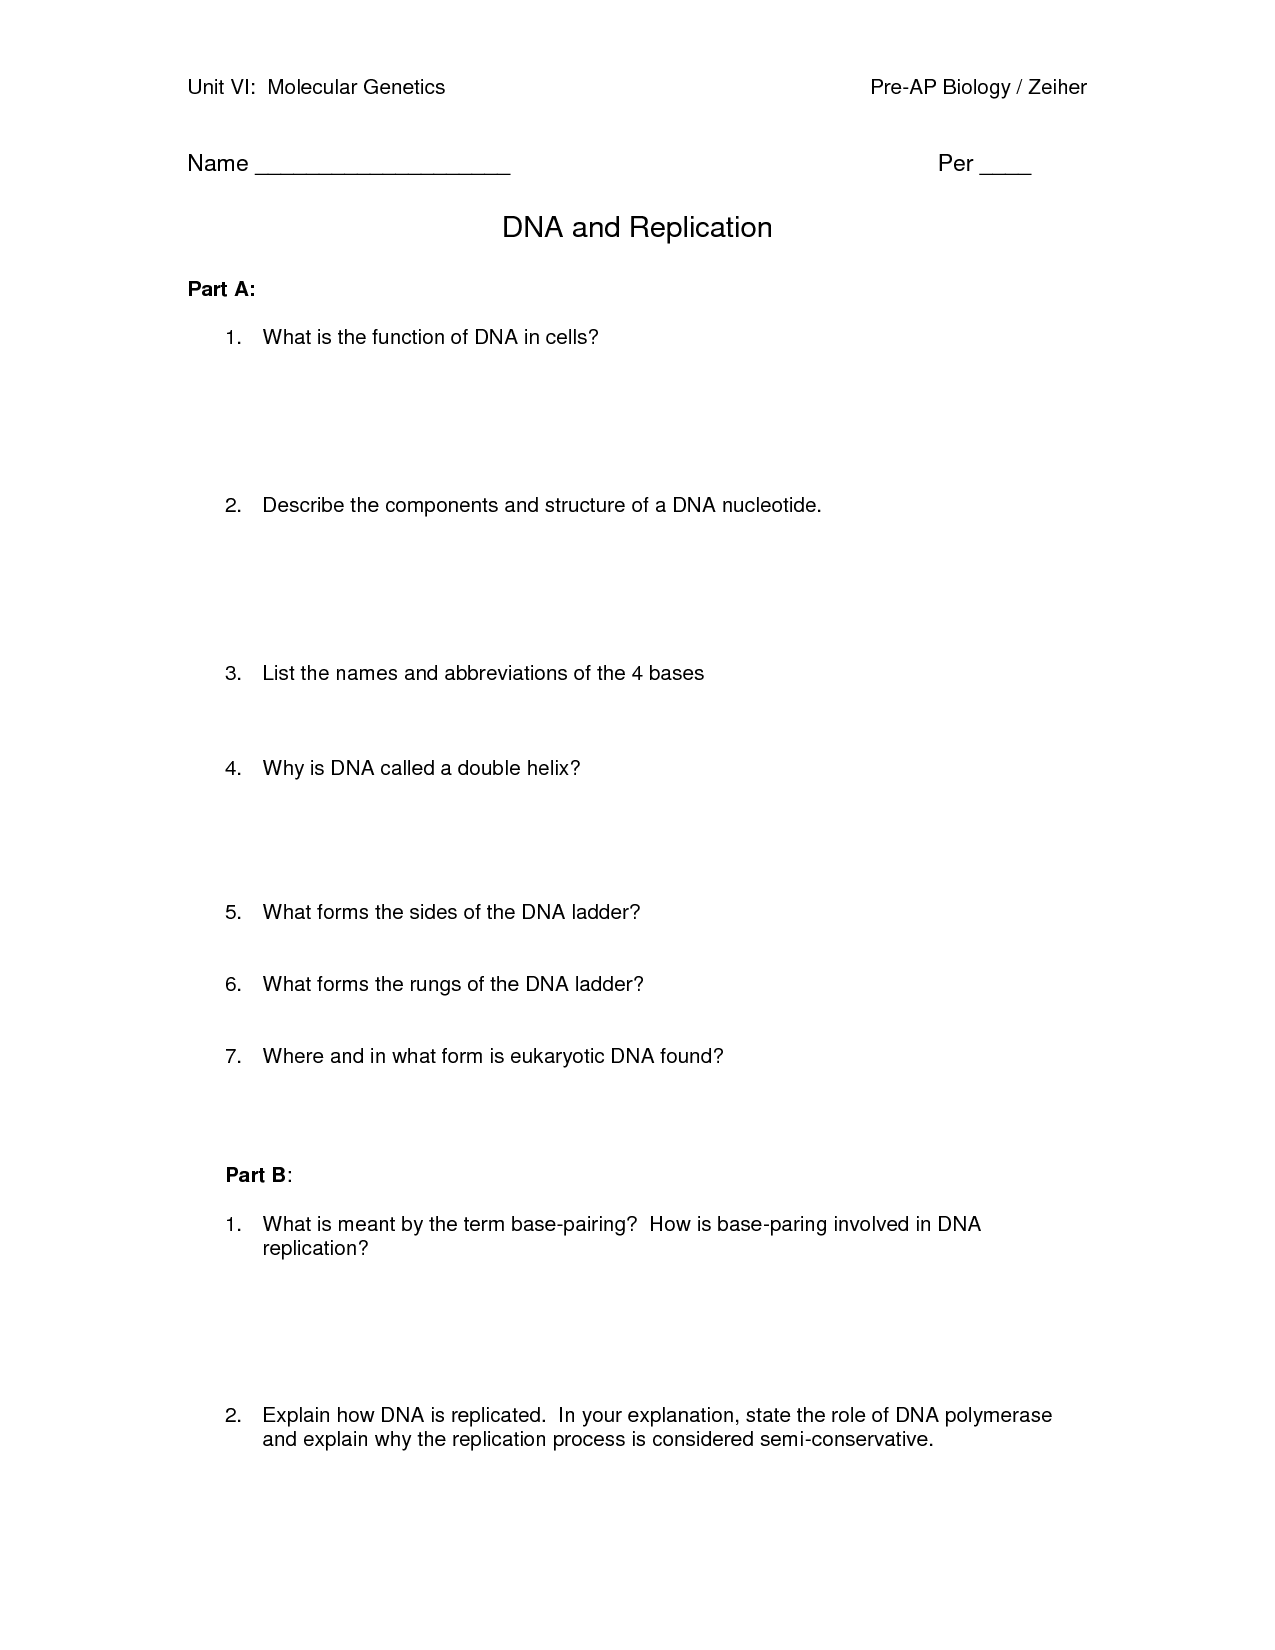 dna replication diagram worksheet cycle of abuse 13 best images middle school